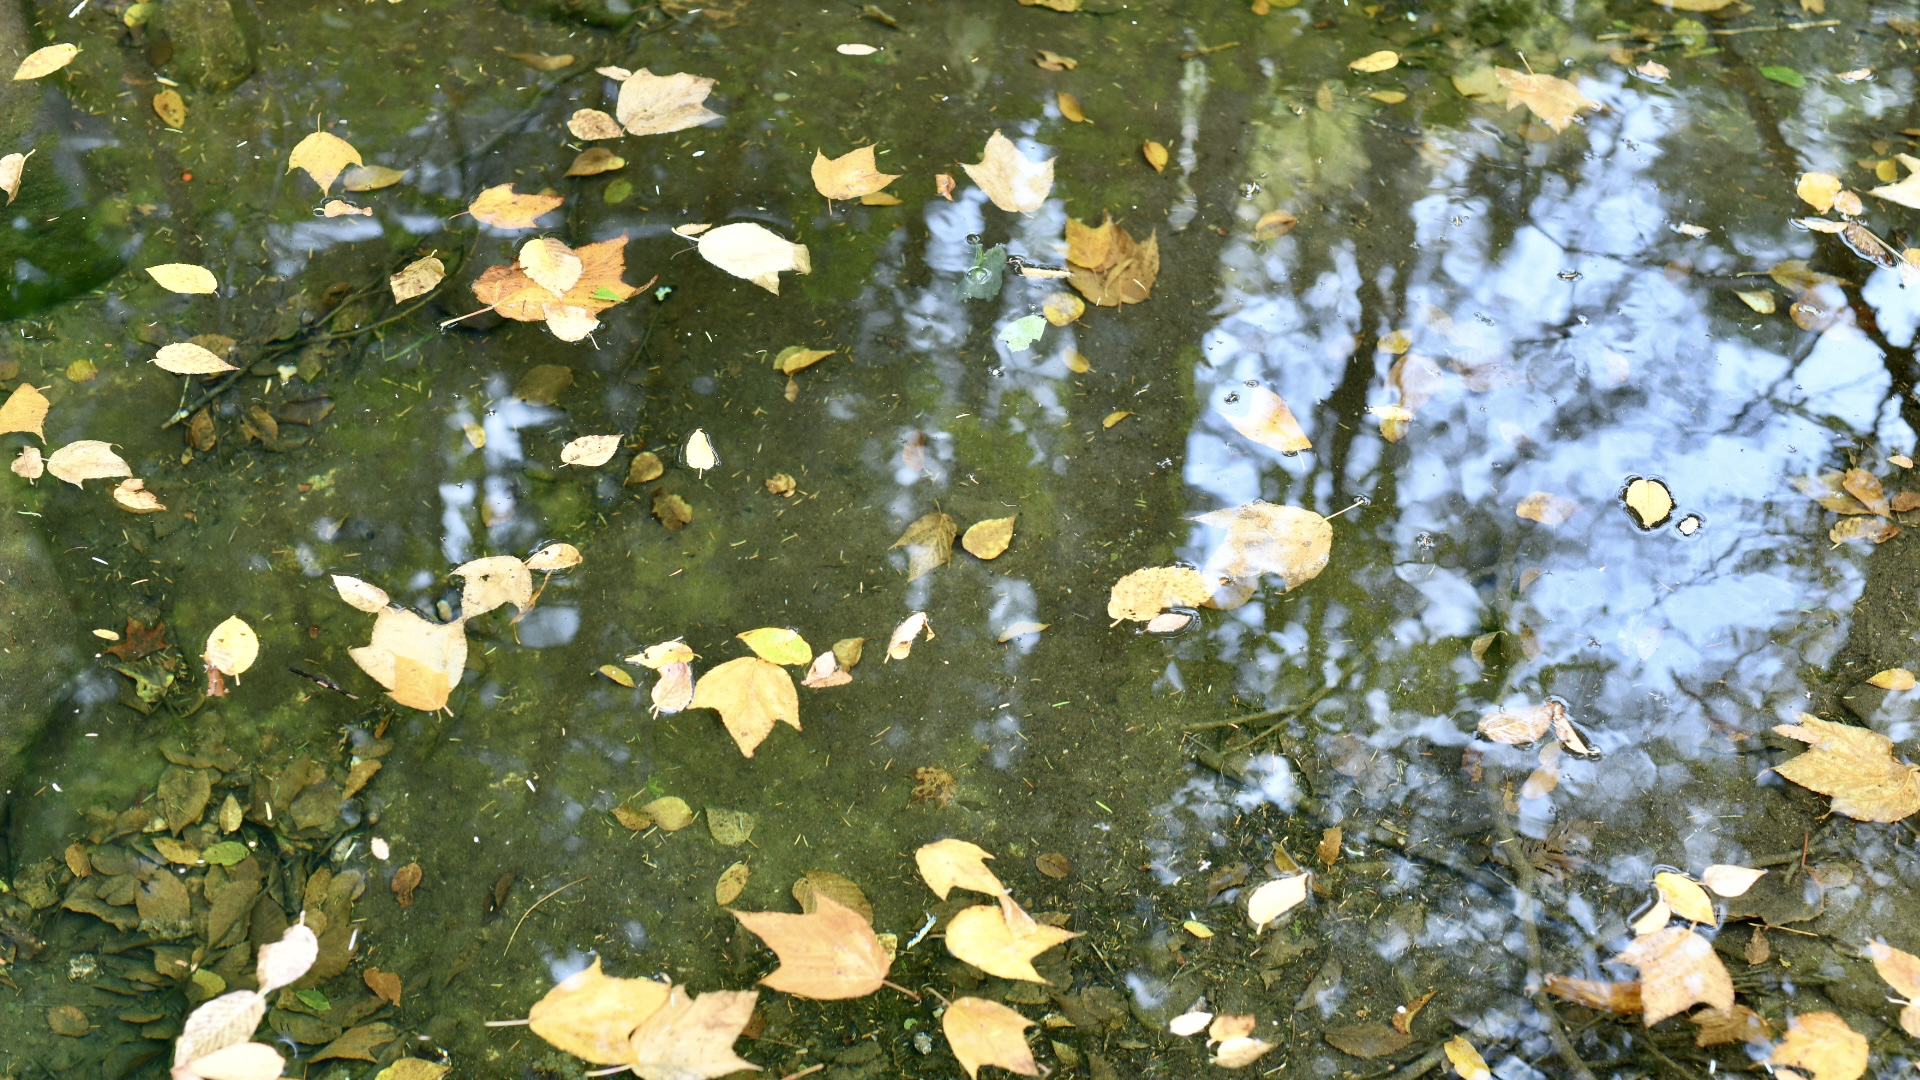 A scattering of yellow autumn leaves floating in water with tree reflections. 2021. Taryn Okesson. Digital Photography. White Mountain National Forest, New Hampshire.